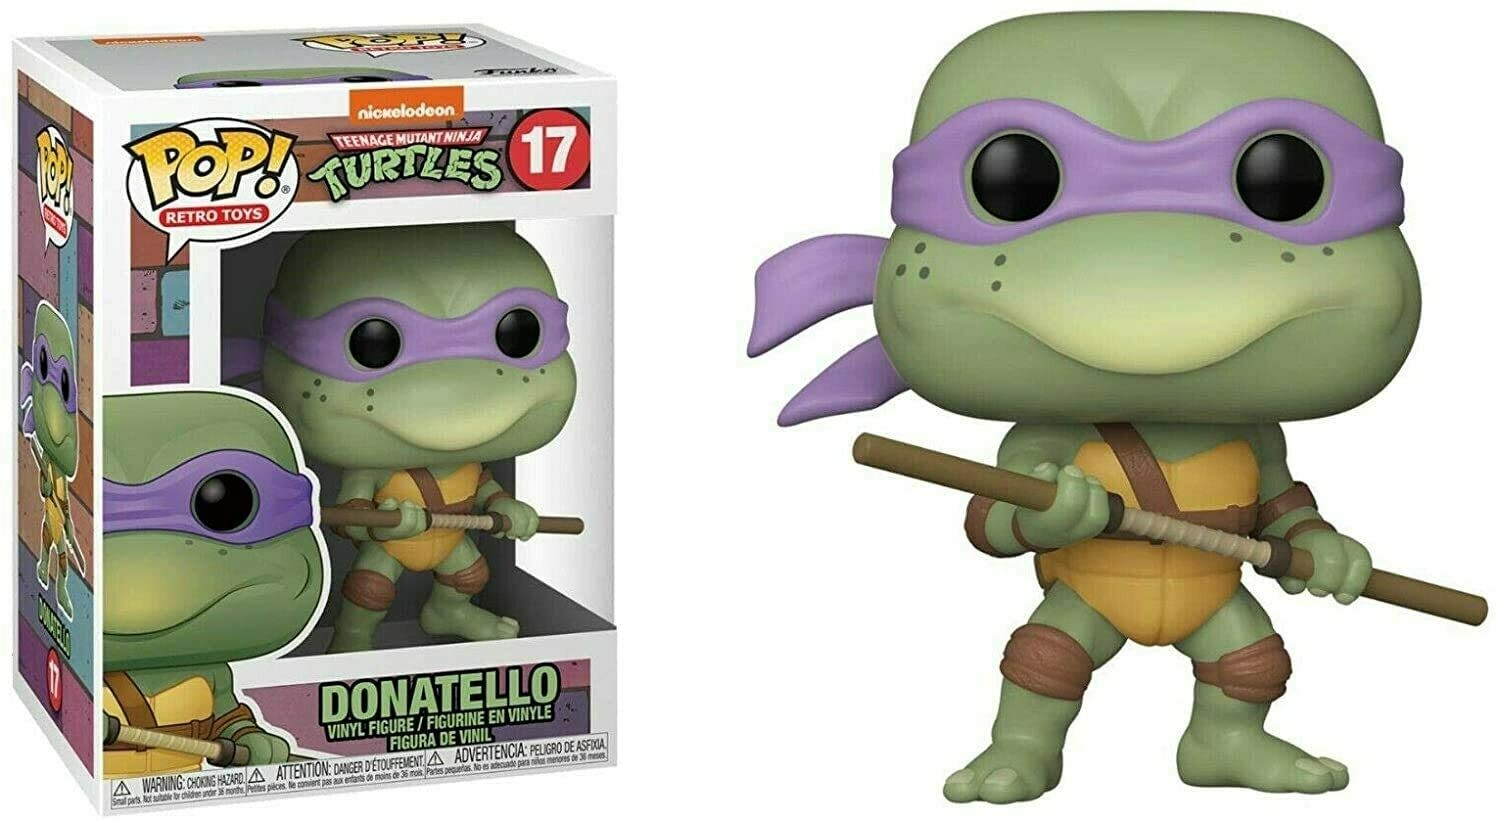 Funko Pop! Donatello #17 - Tortugas Ninja